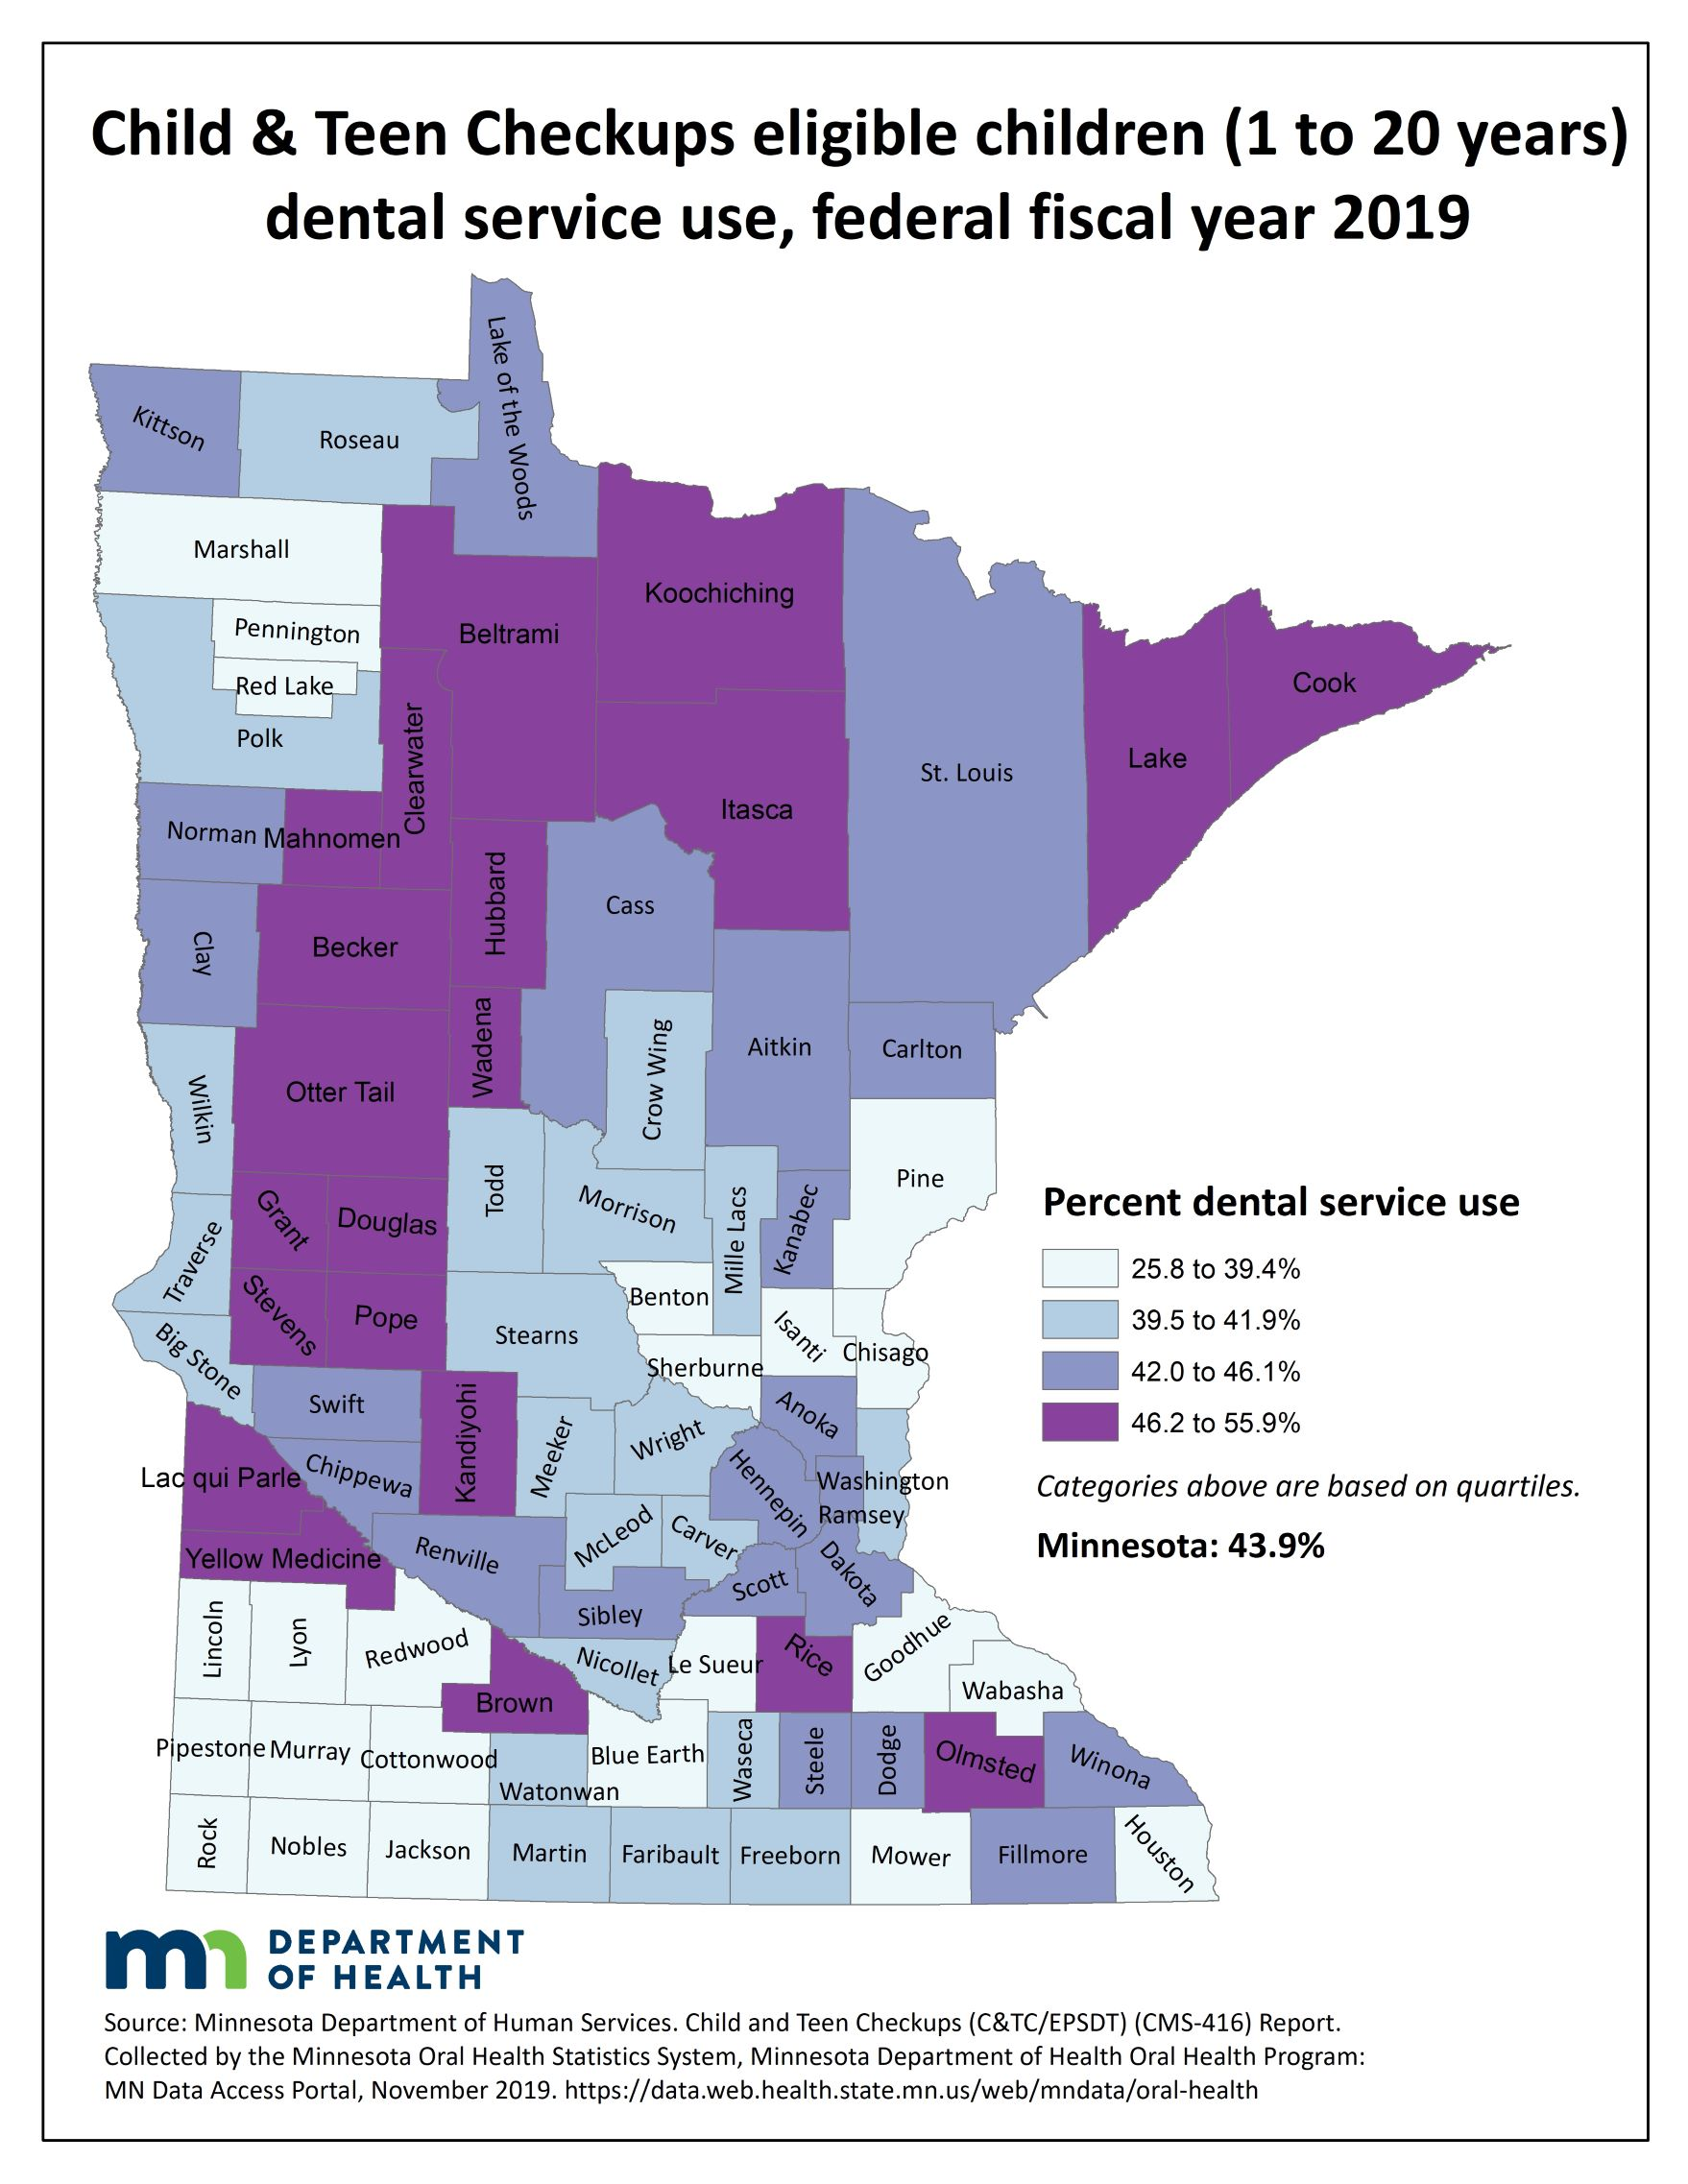 County map image Child $amp; Teen Checkup Eligible Children (1 to20 years) Dental Service Use and link to PDF of the same